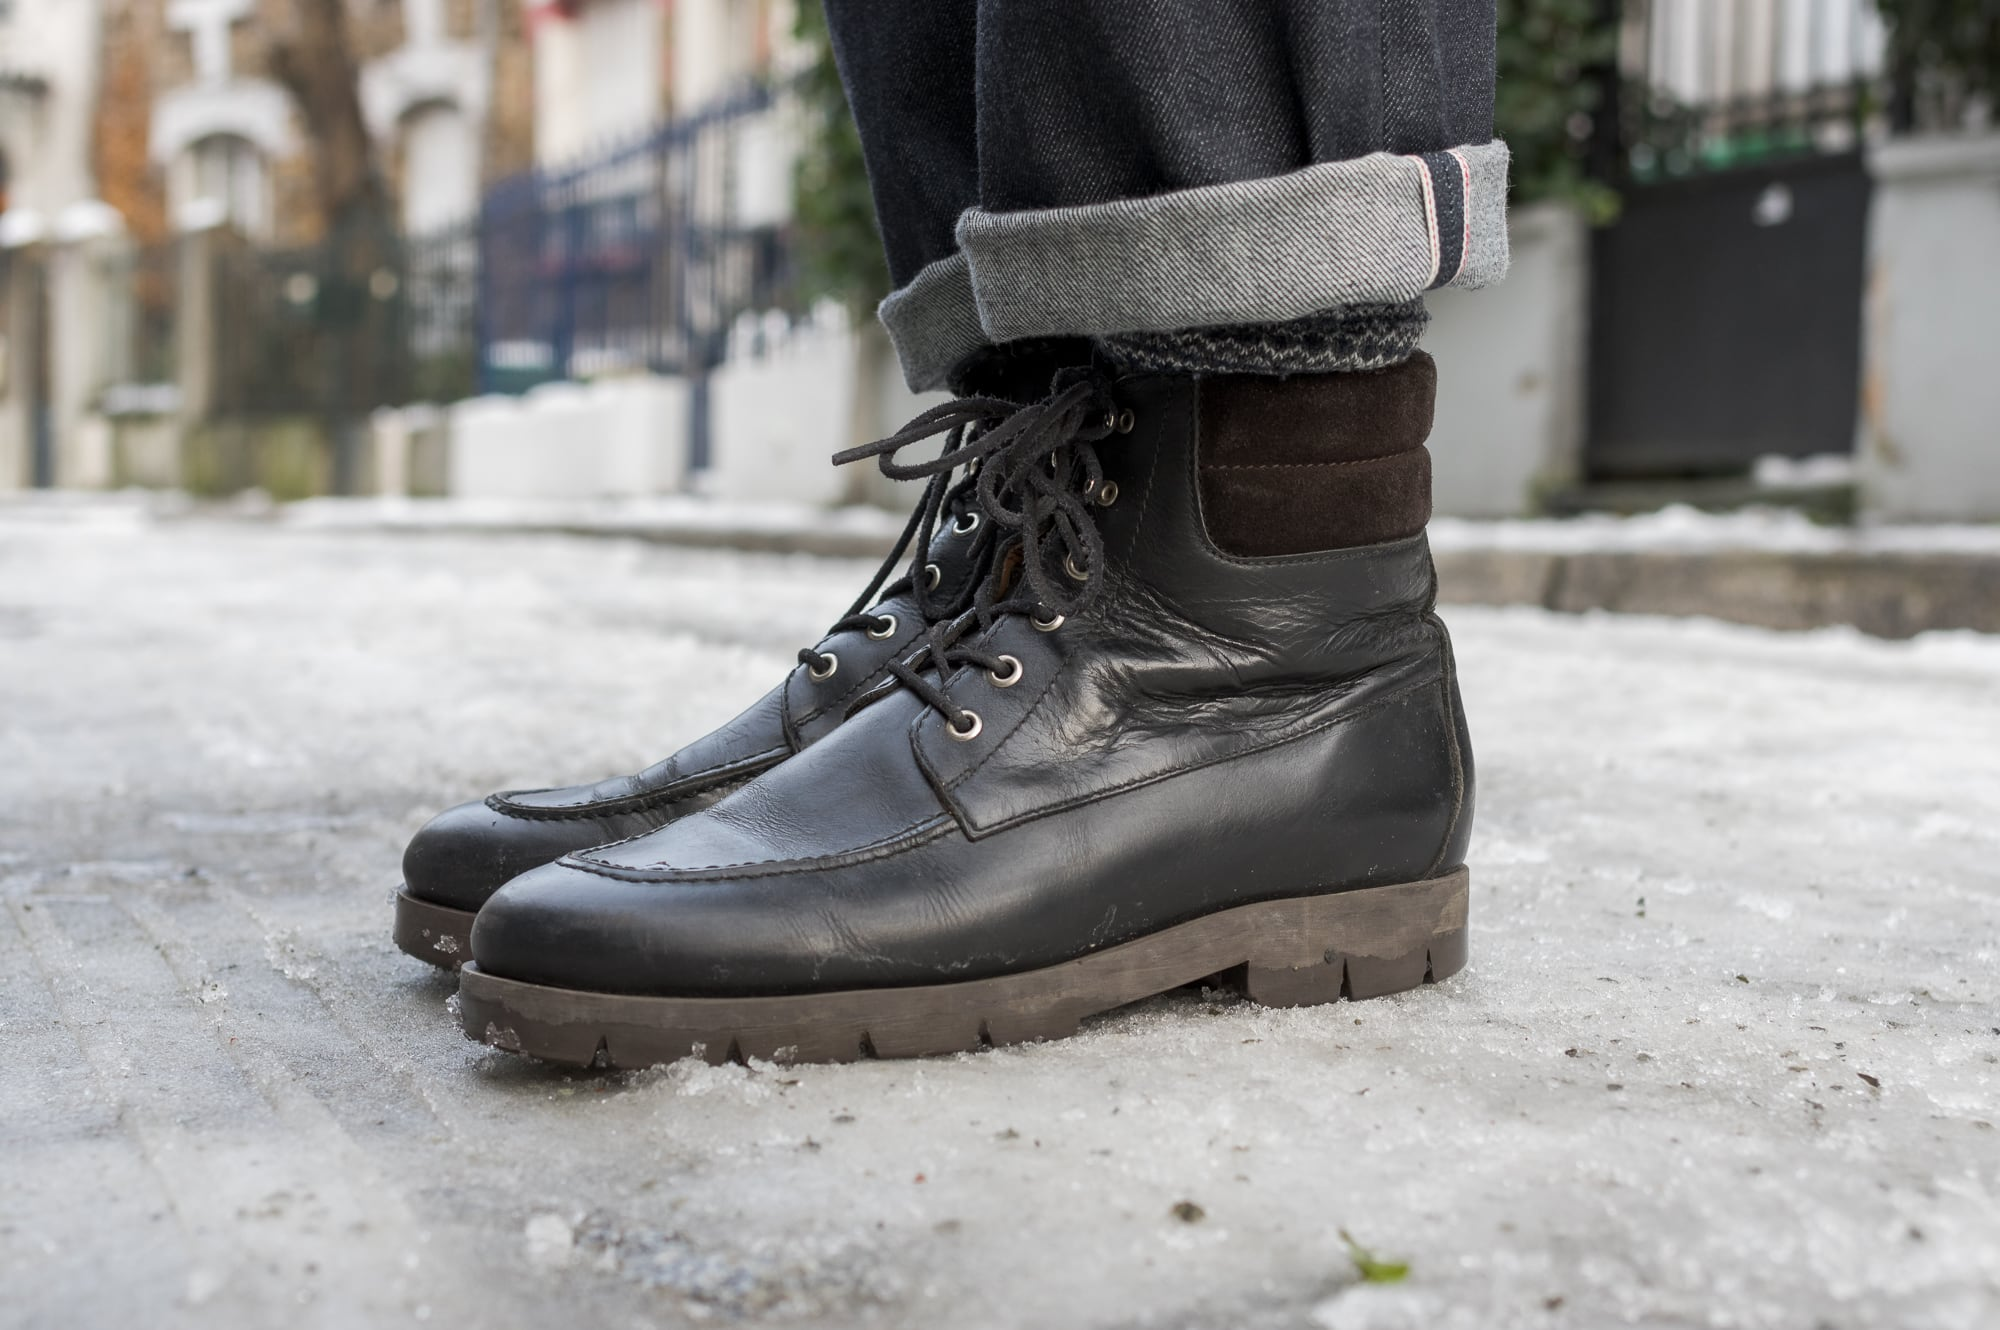 Phi. denim straight raw jeans - made in Japan - Service boots APC